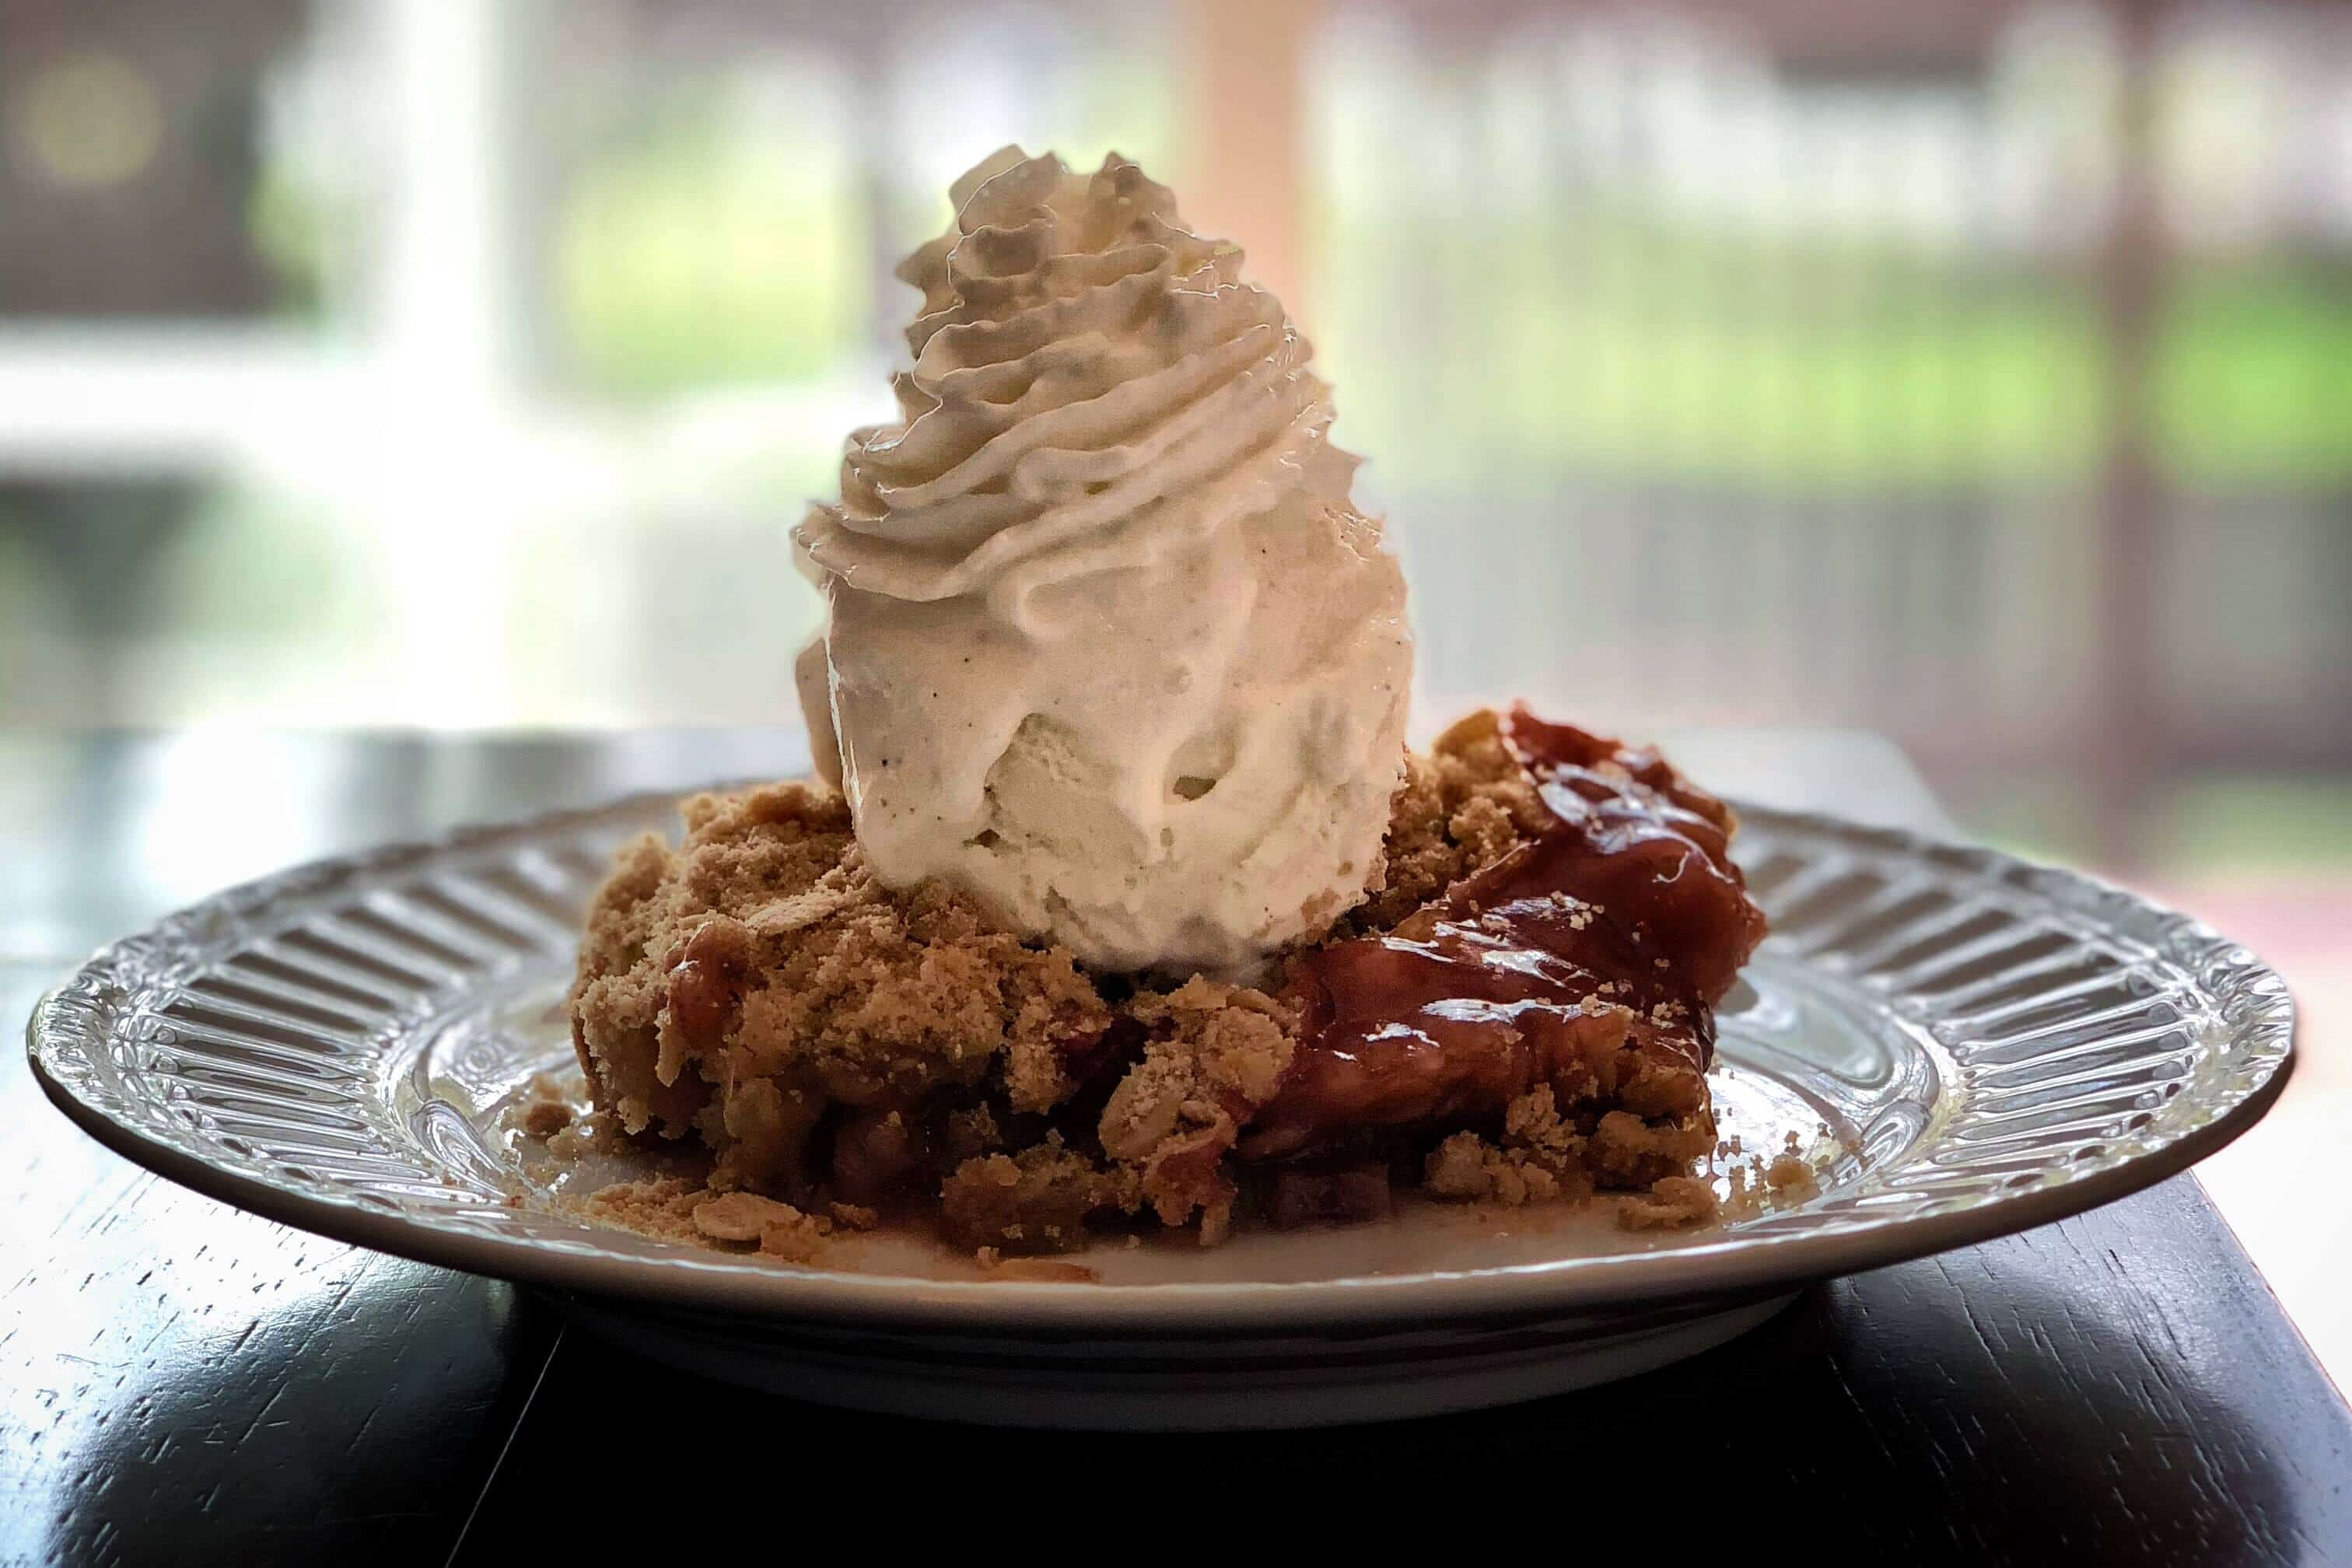 Rhubarb Crunch with Whipped and Ice Cream